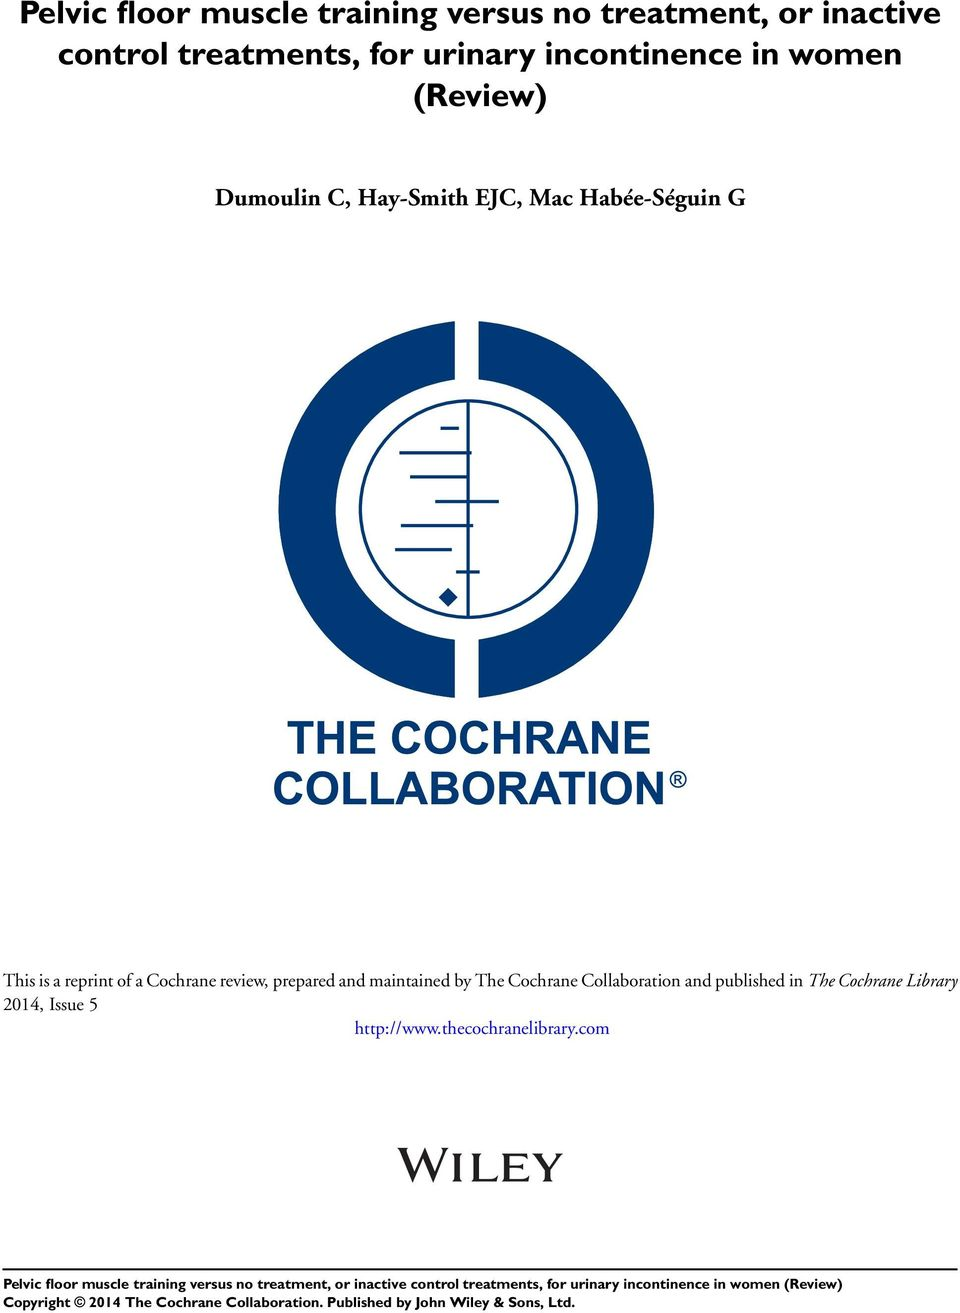 This is a reprint of a Cochrane review, prepared and maintained by The Cochrane